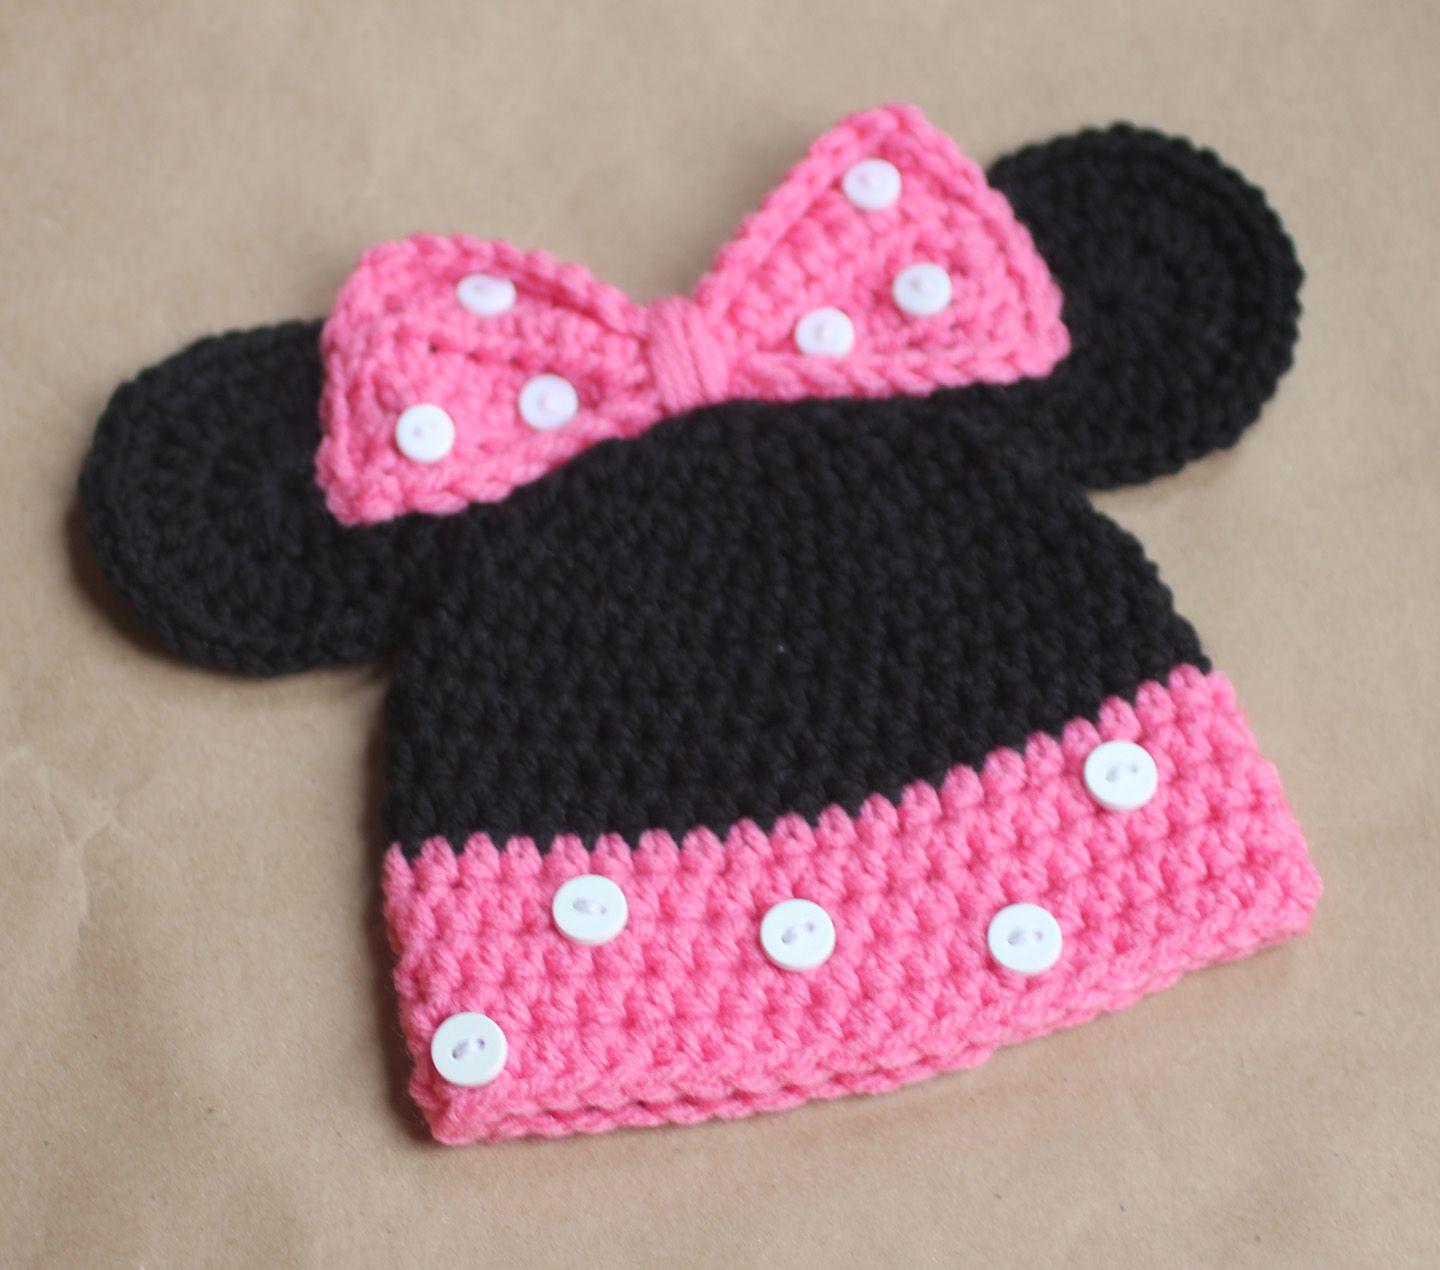 Mickey and Minnie Mouse Crochet Hat Pattern | Gorros, Tejido y ...